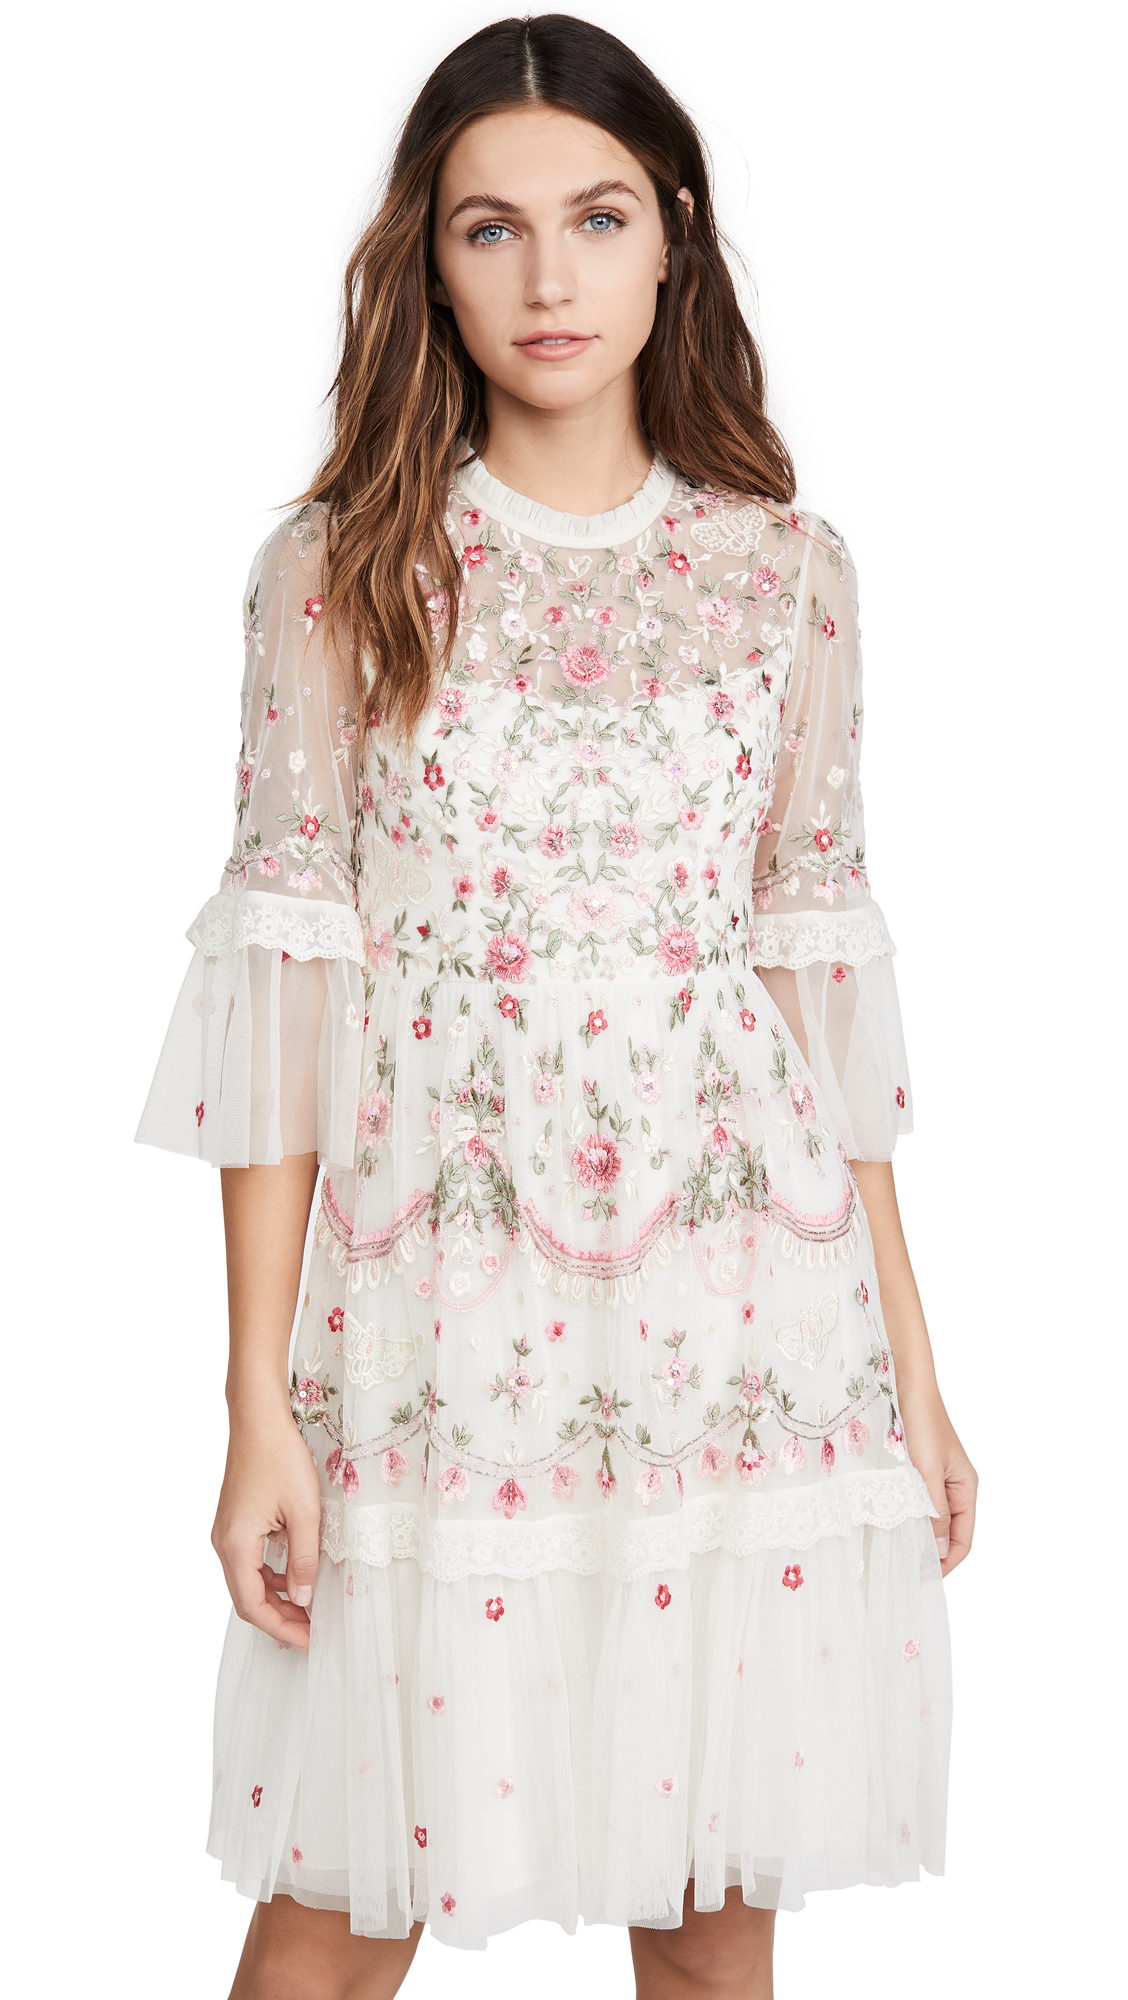 Needle & Thread Butterfly Meadow Dress - 30% Off Sale